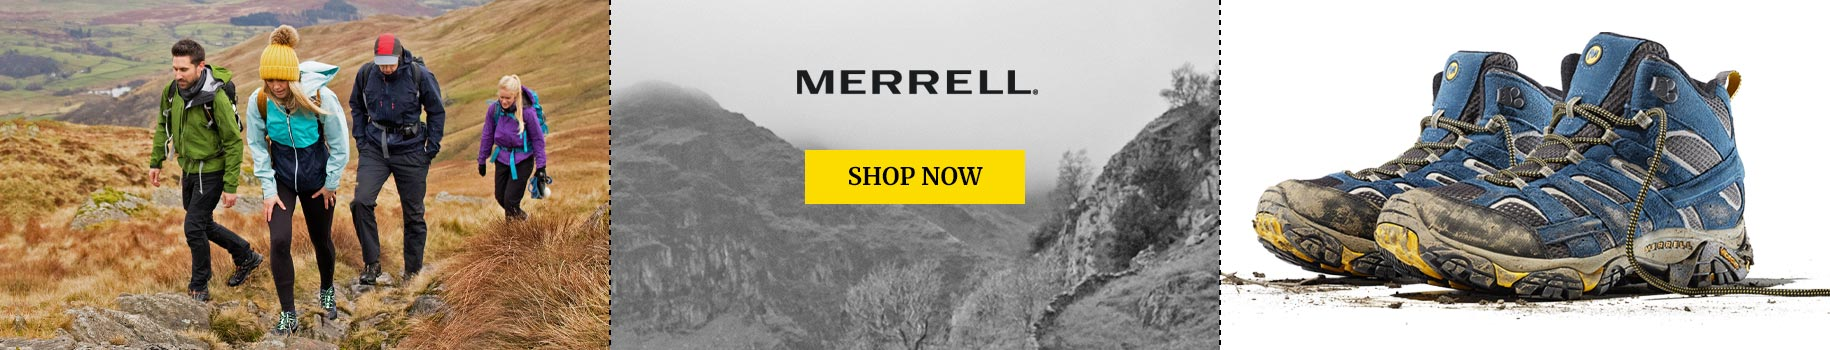 Merrell at Phillips Shoes - Shop Now